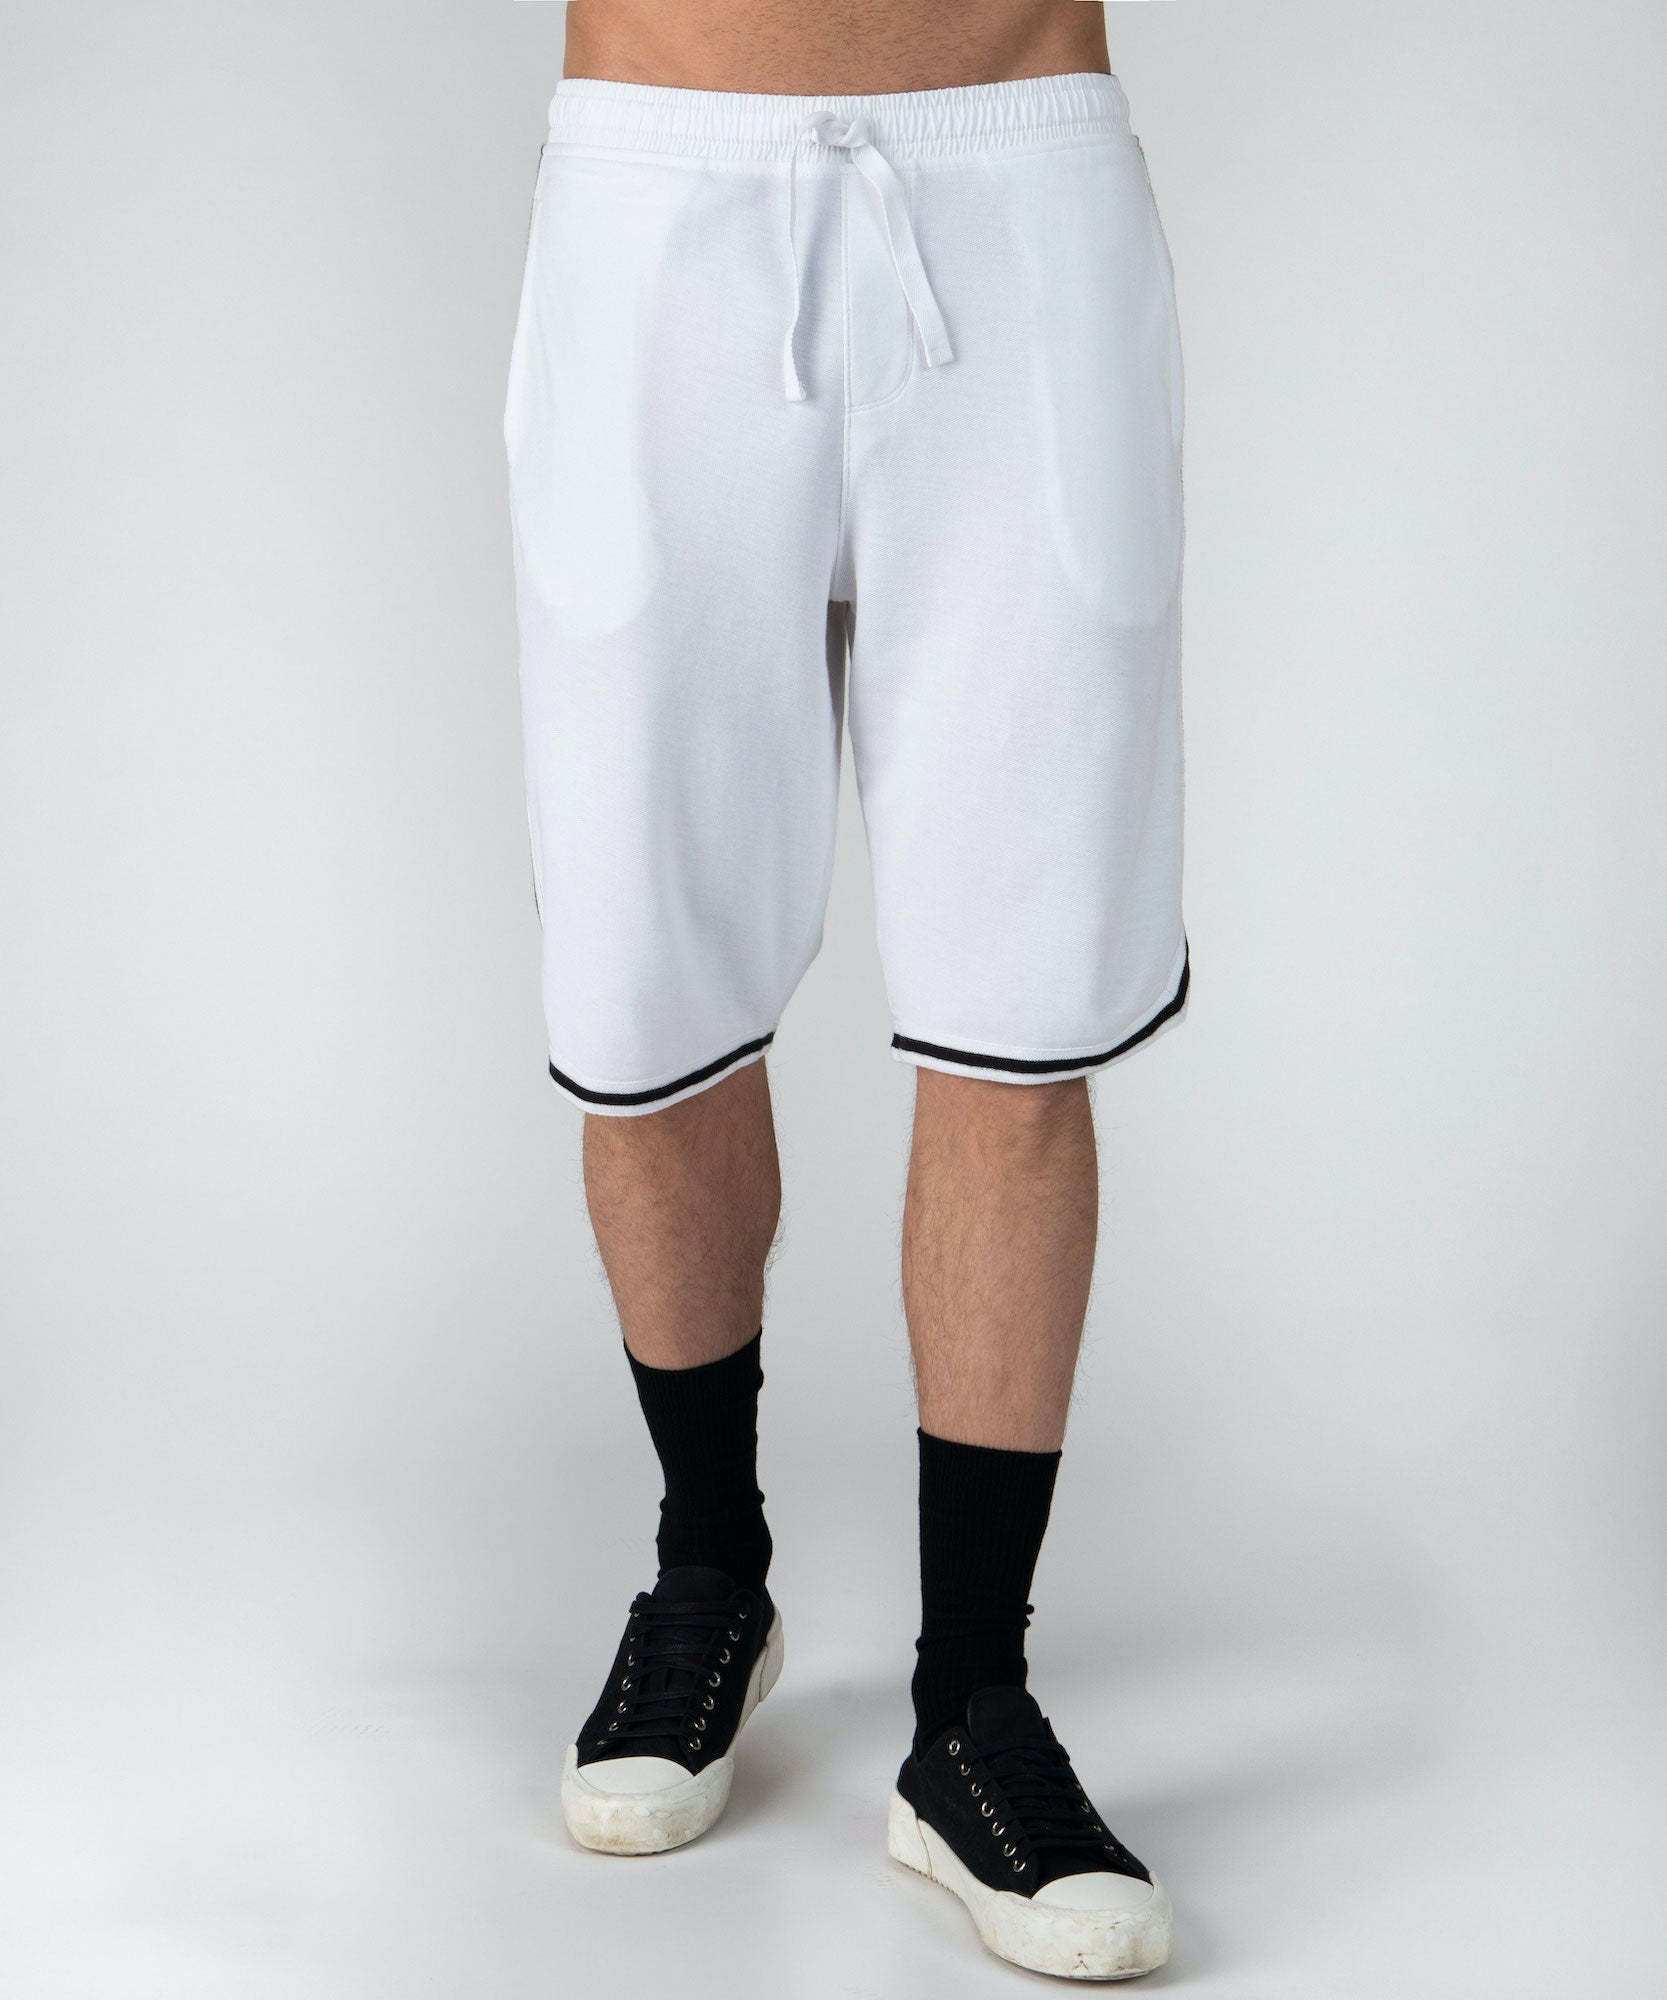 White Pique Basketball Shorts - Men's Luxe Loungewear by ATM Anthony Thomas Melillo